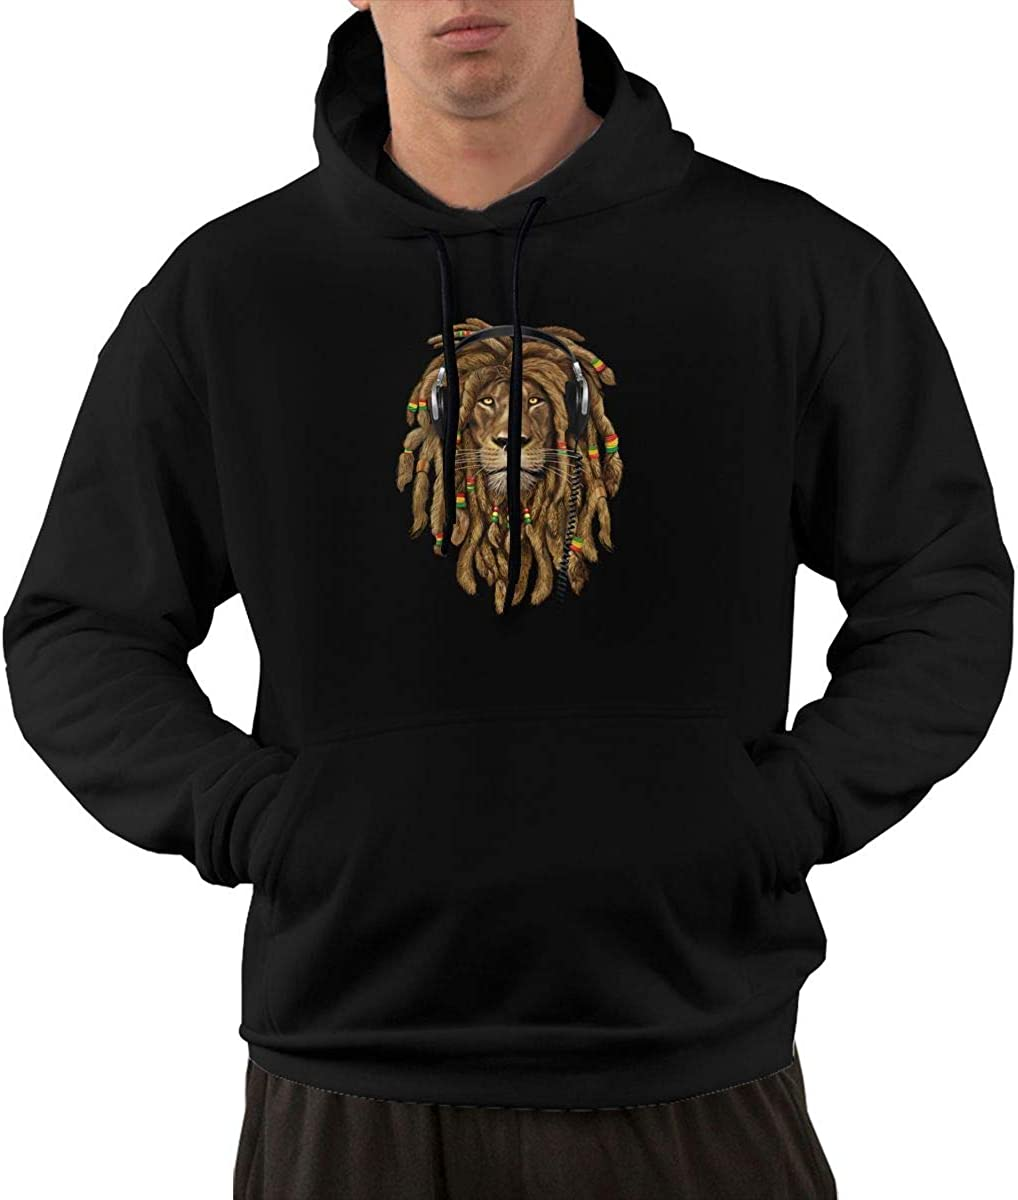 Slotley Dreadlock Rasta Lion Headphones Mens Hoodie Sweatshirt